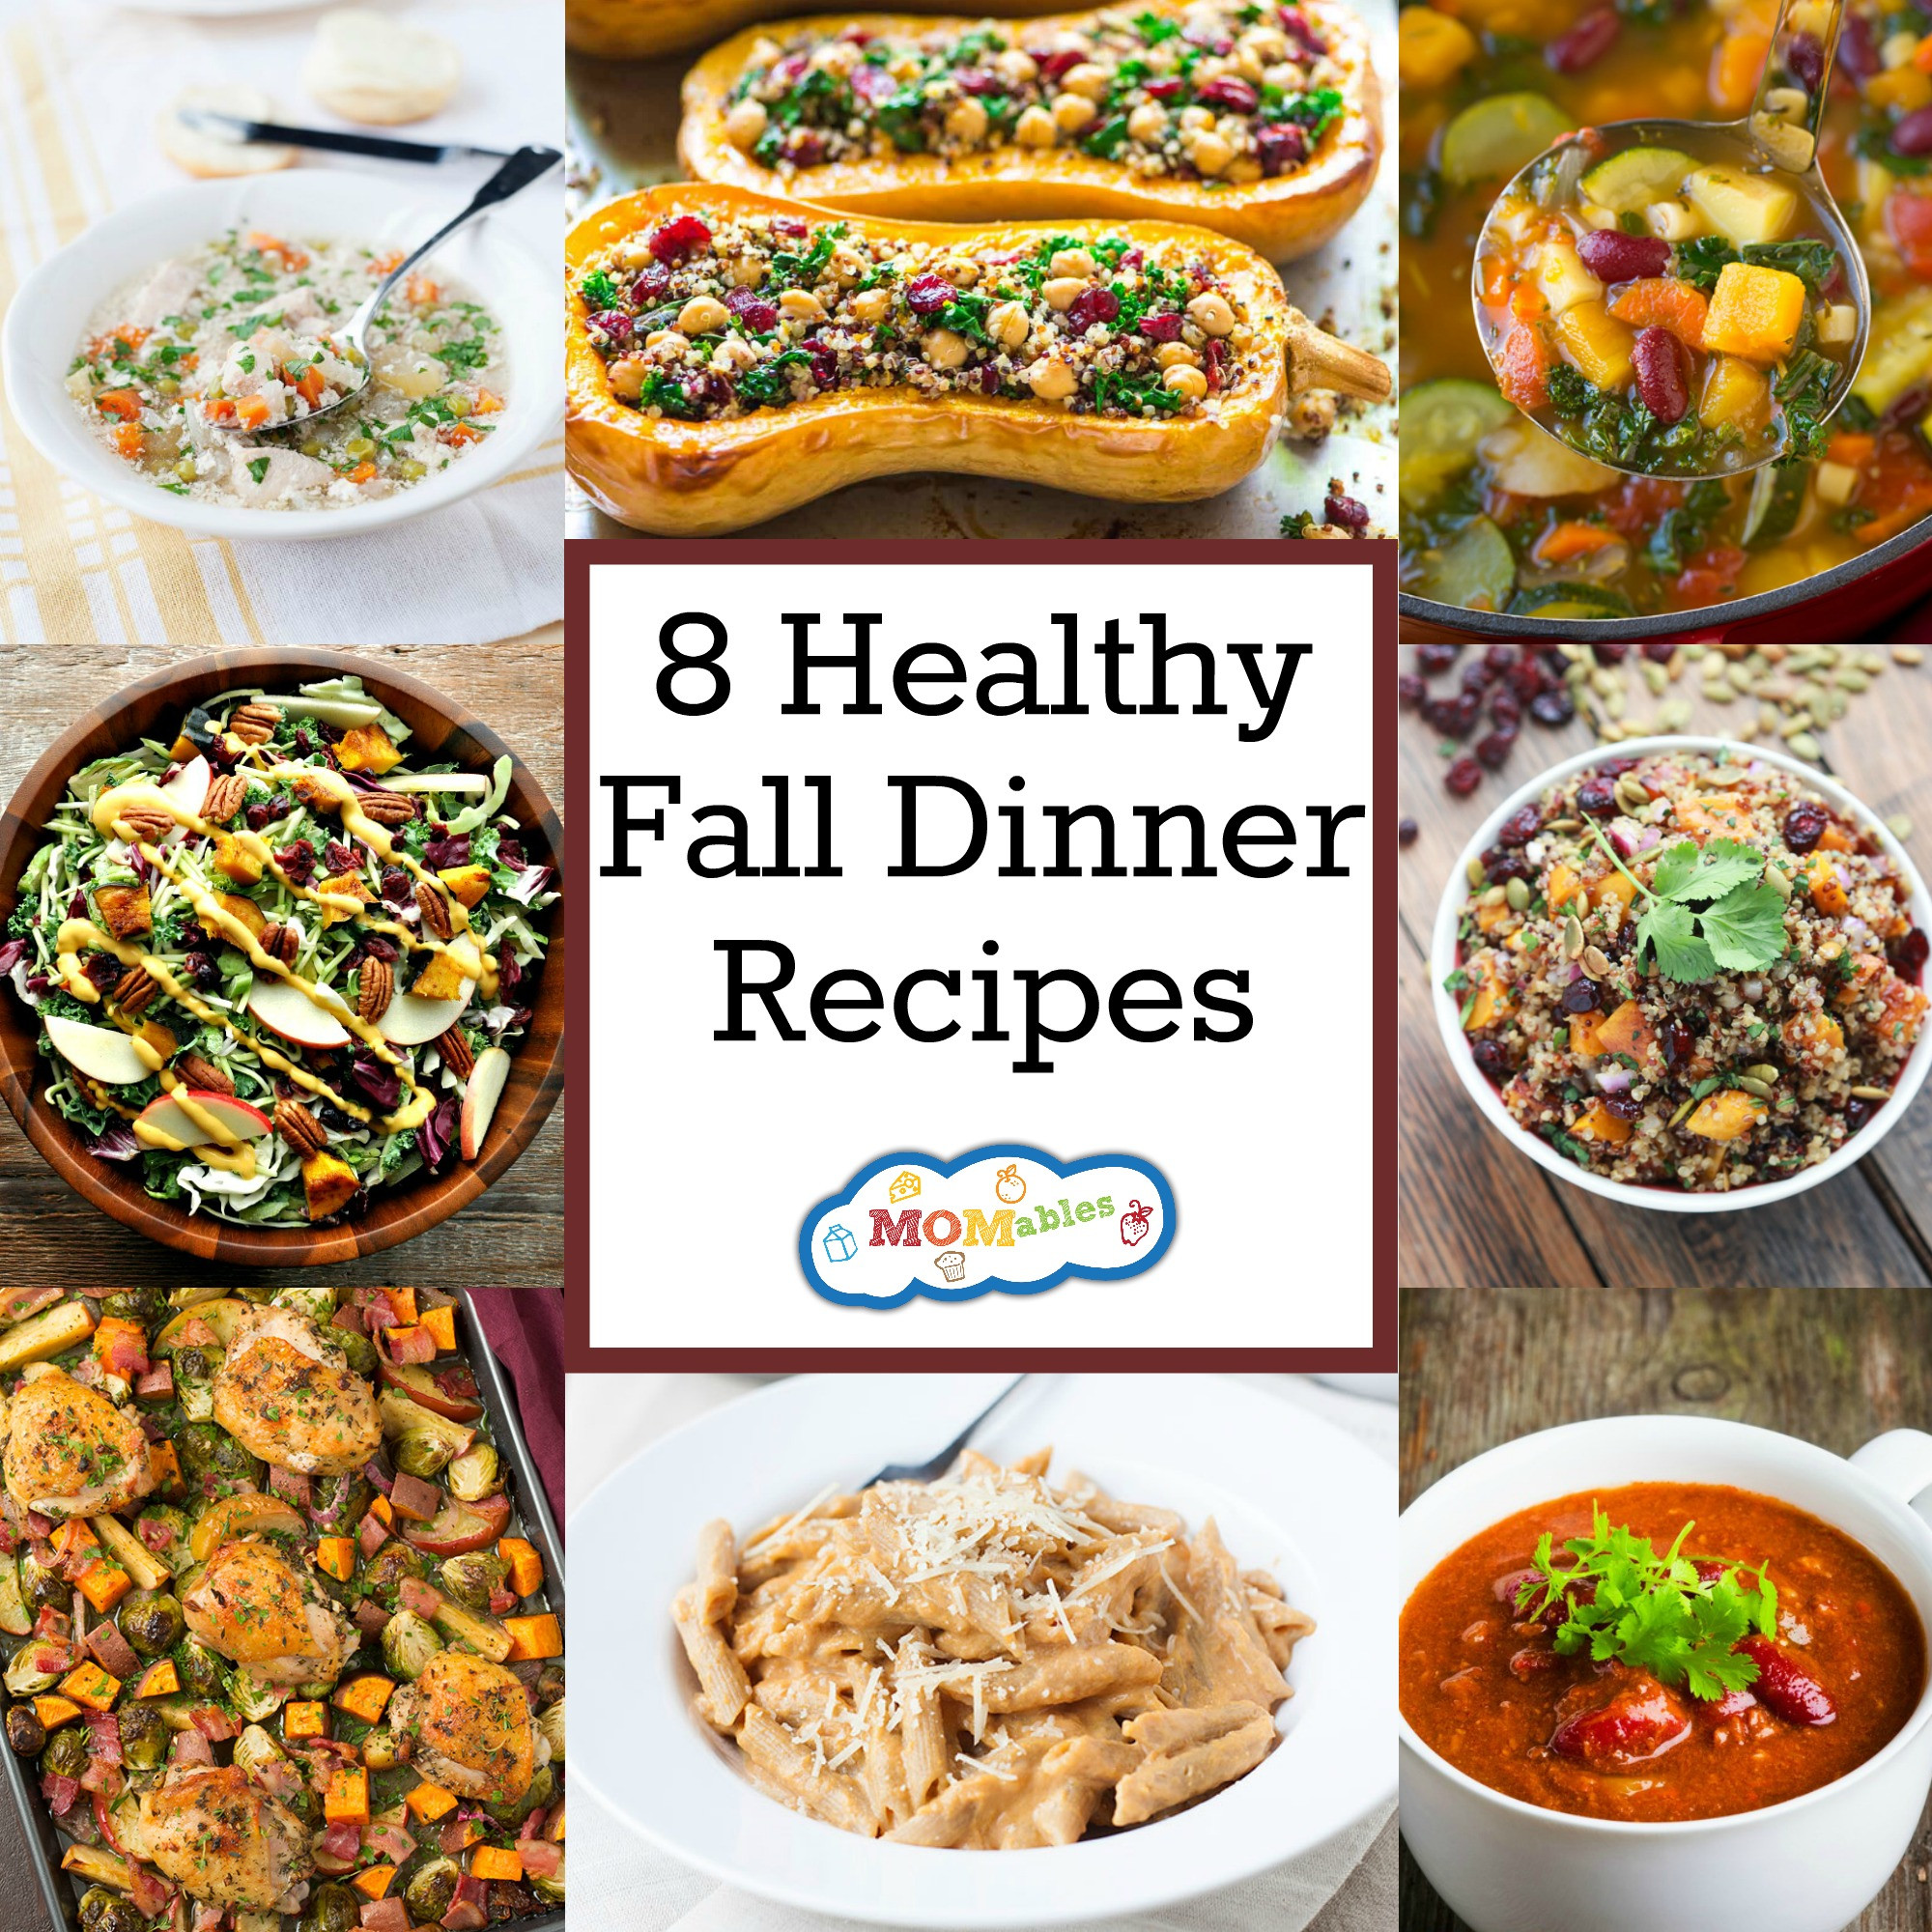 Fall Sunday Dinner Ideas  20 Best Healthy Sunday Dinner Ideas Best Recipes Ever